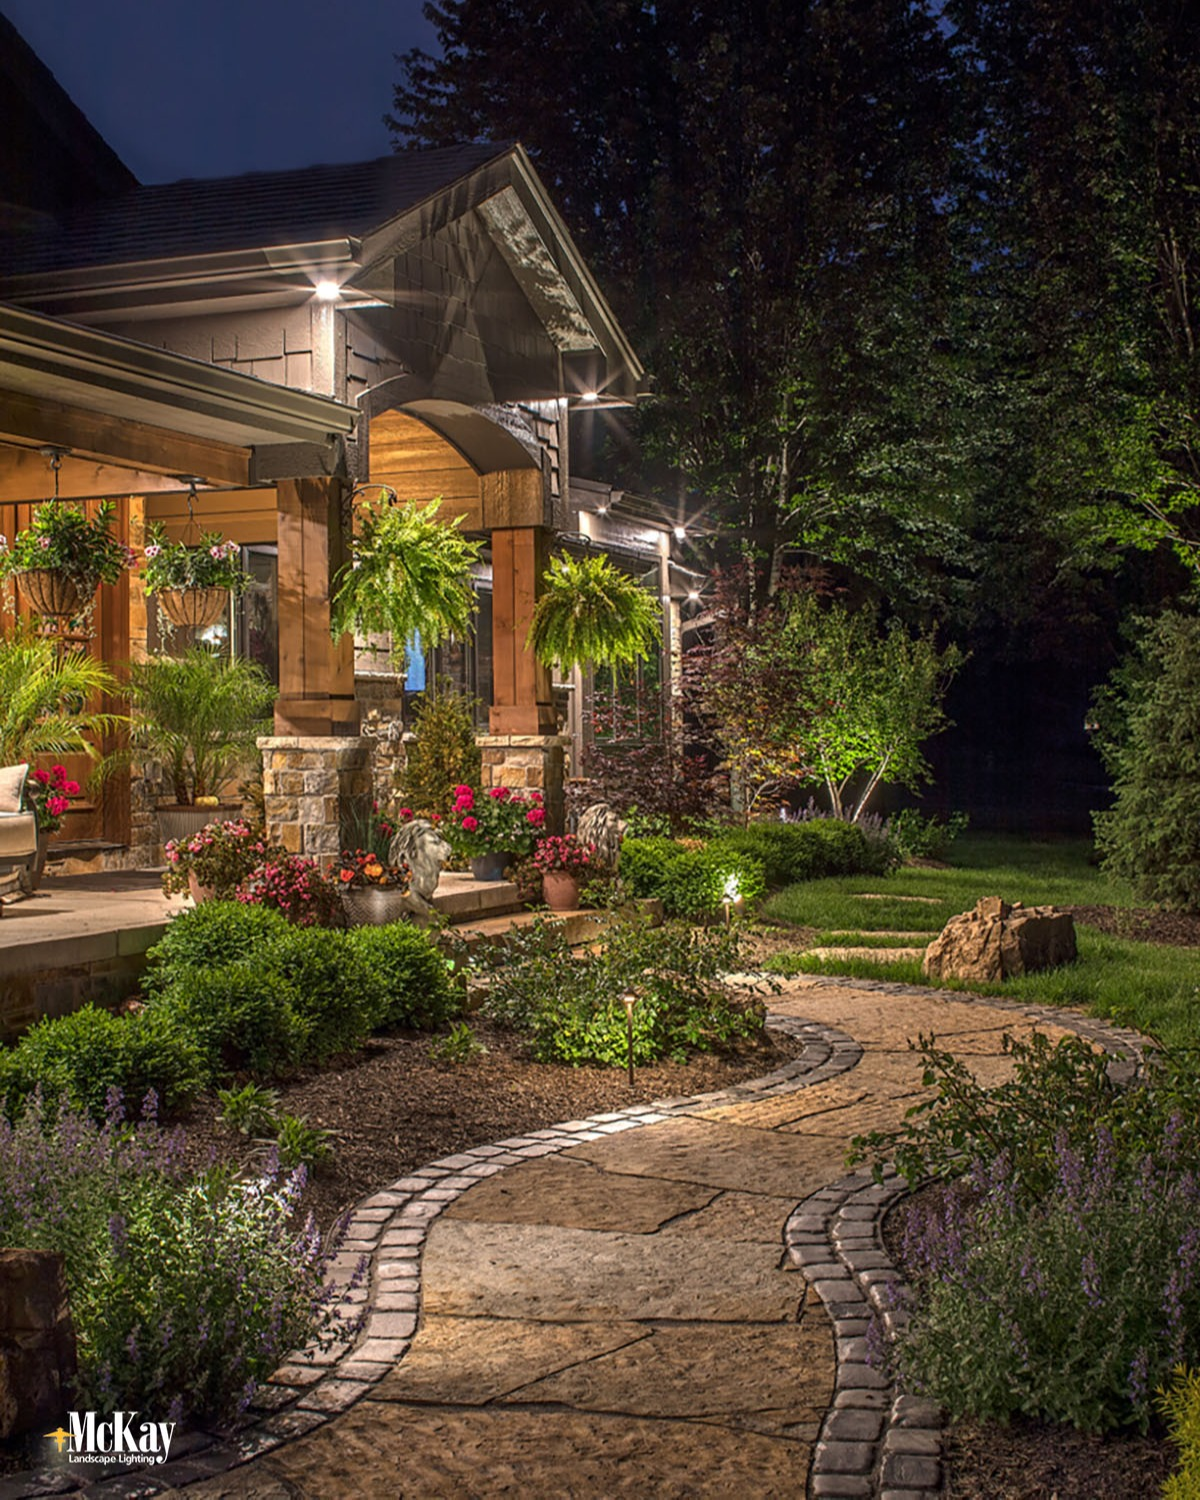 The key to using path lights is finding the perfect balance for your walkway. Too many lights will give a runway type of look while too few lights will leave dark spots. Learn more about path lighting... | McKay Landscape Lighting Omaha Nebraska